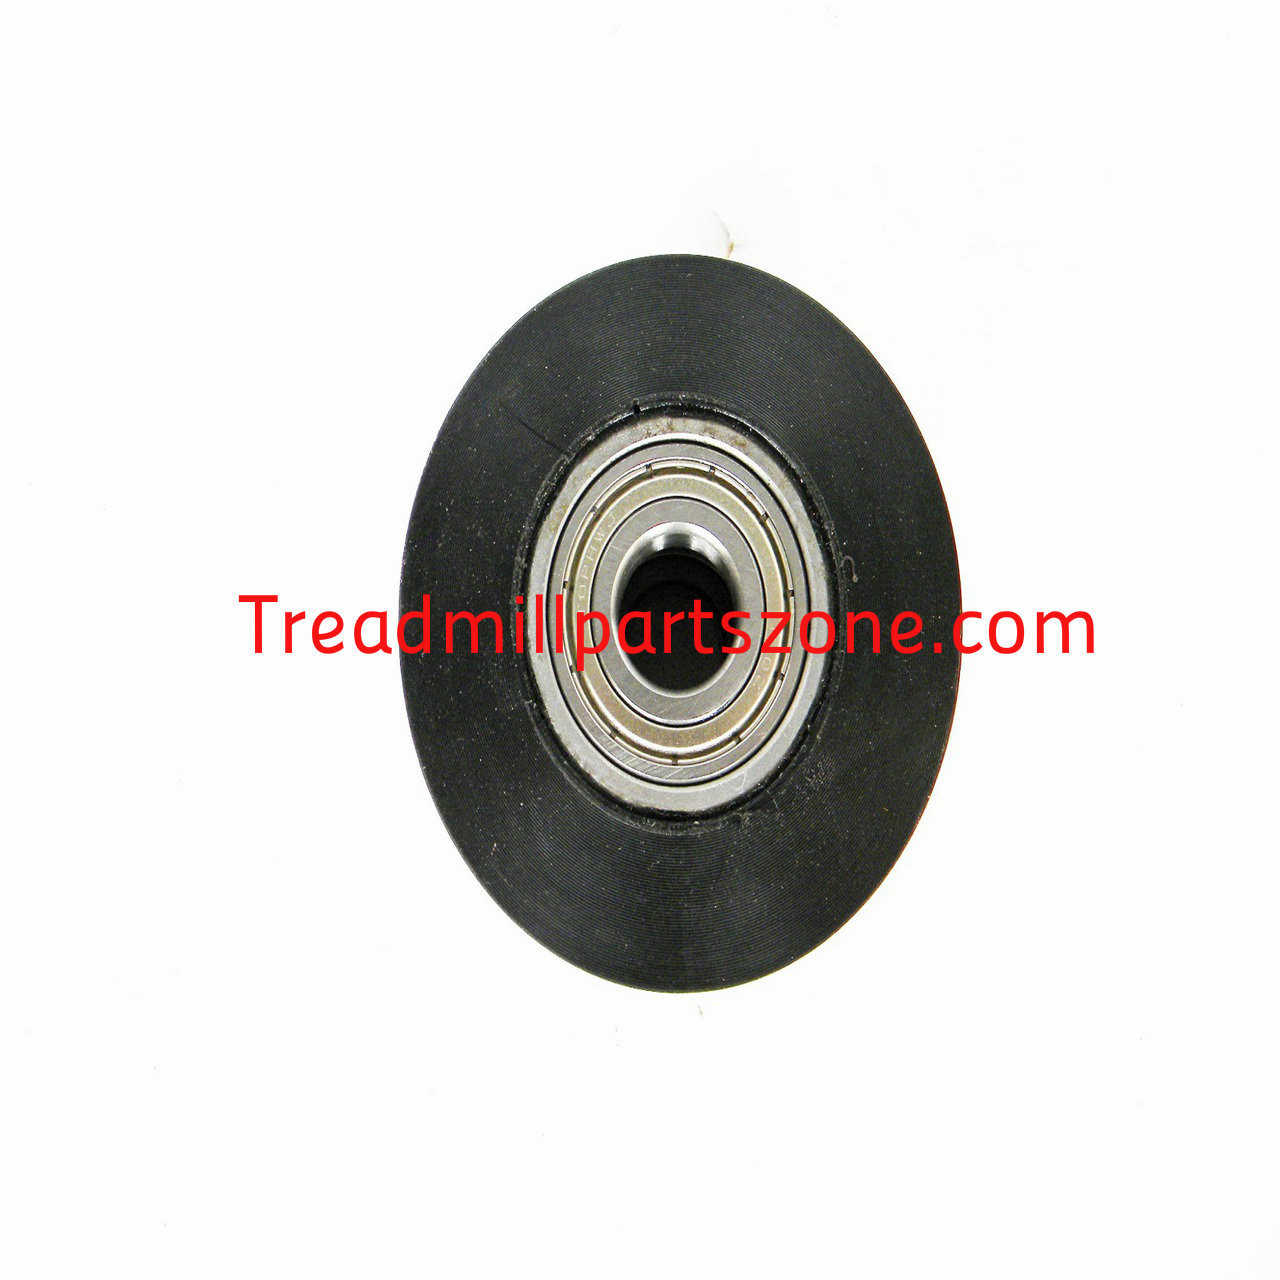 Sears Nordic Track Elliptical Model 238892 AUDIOSTRIDER 990 PRO Ramp Roller Part 316741